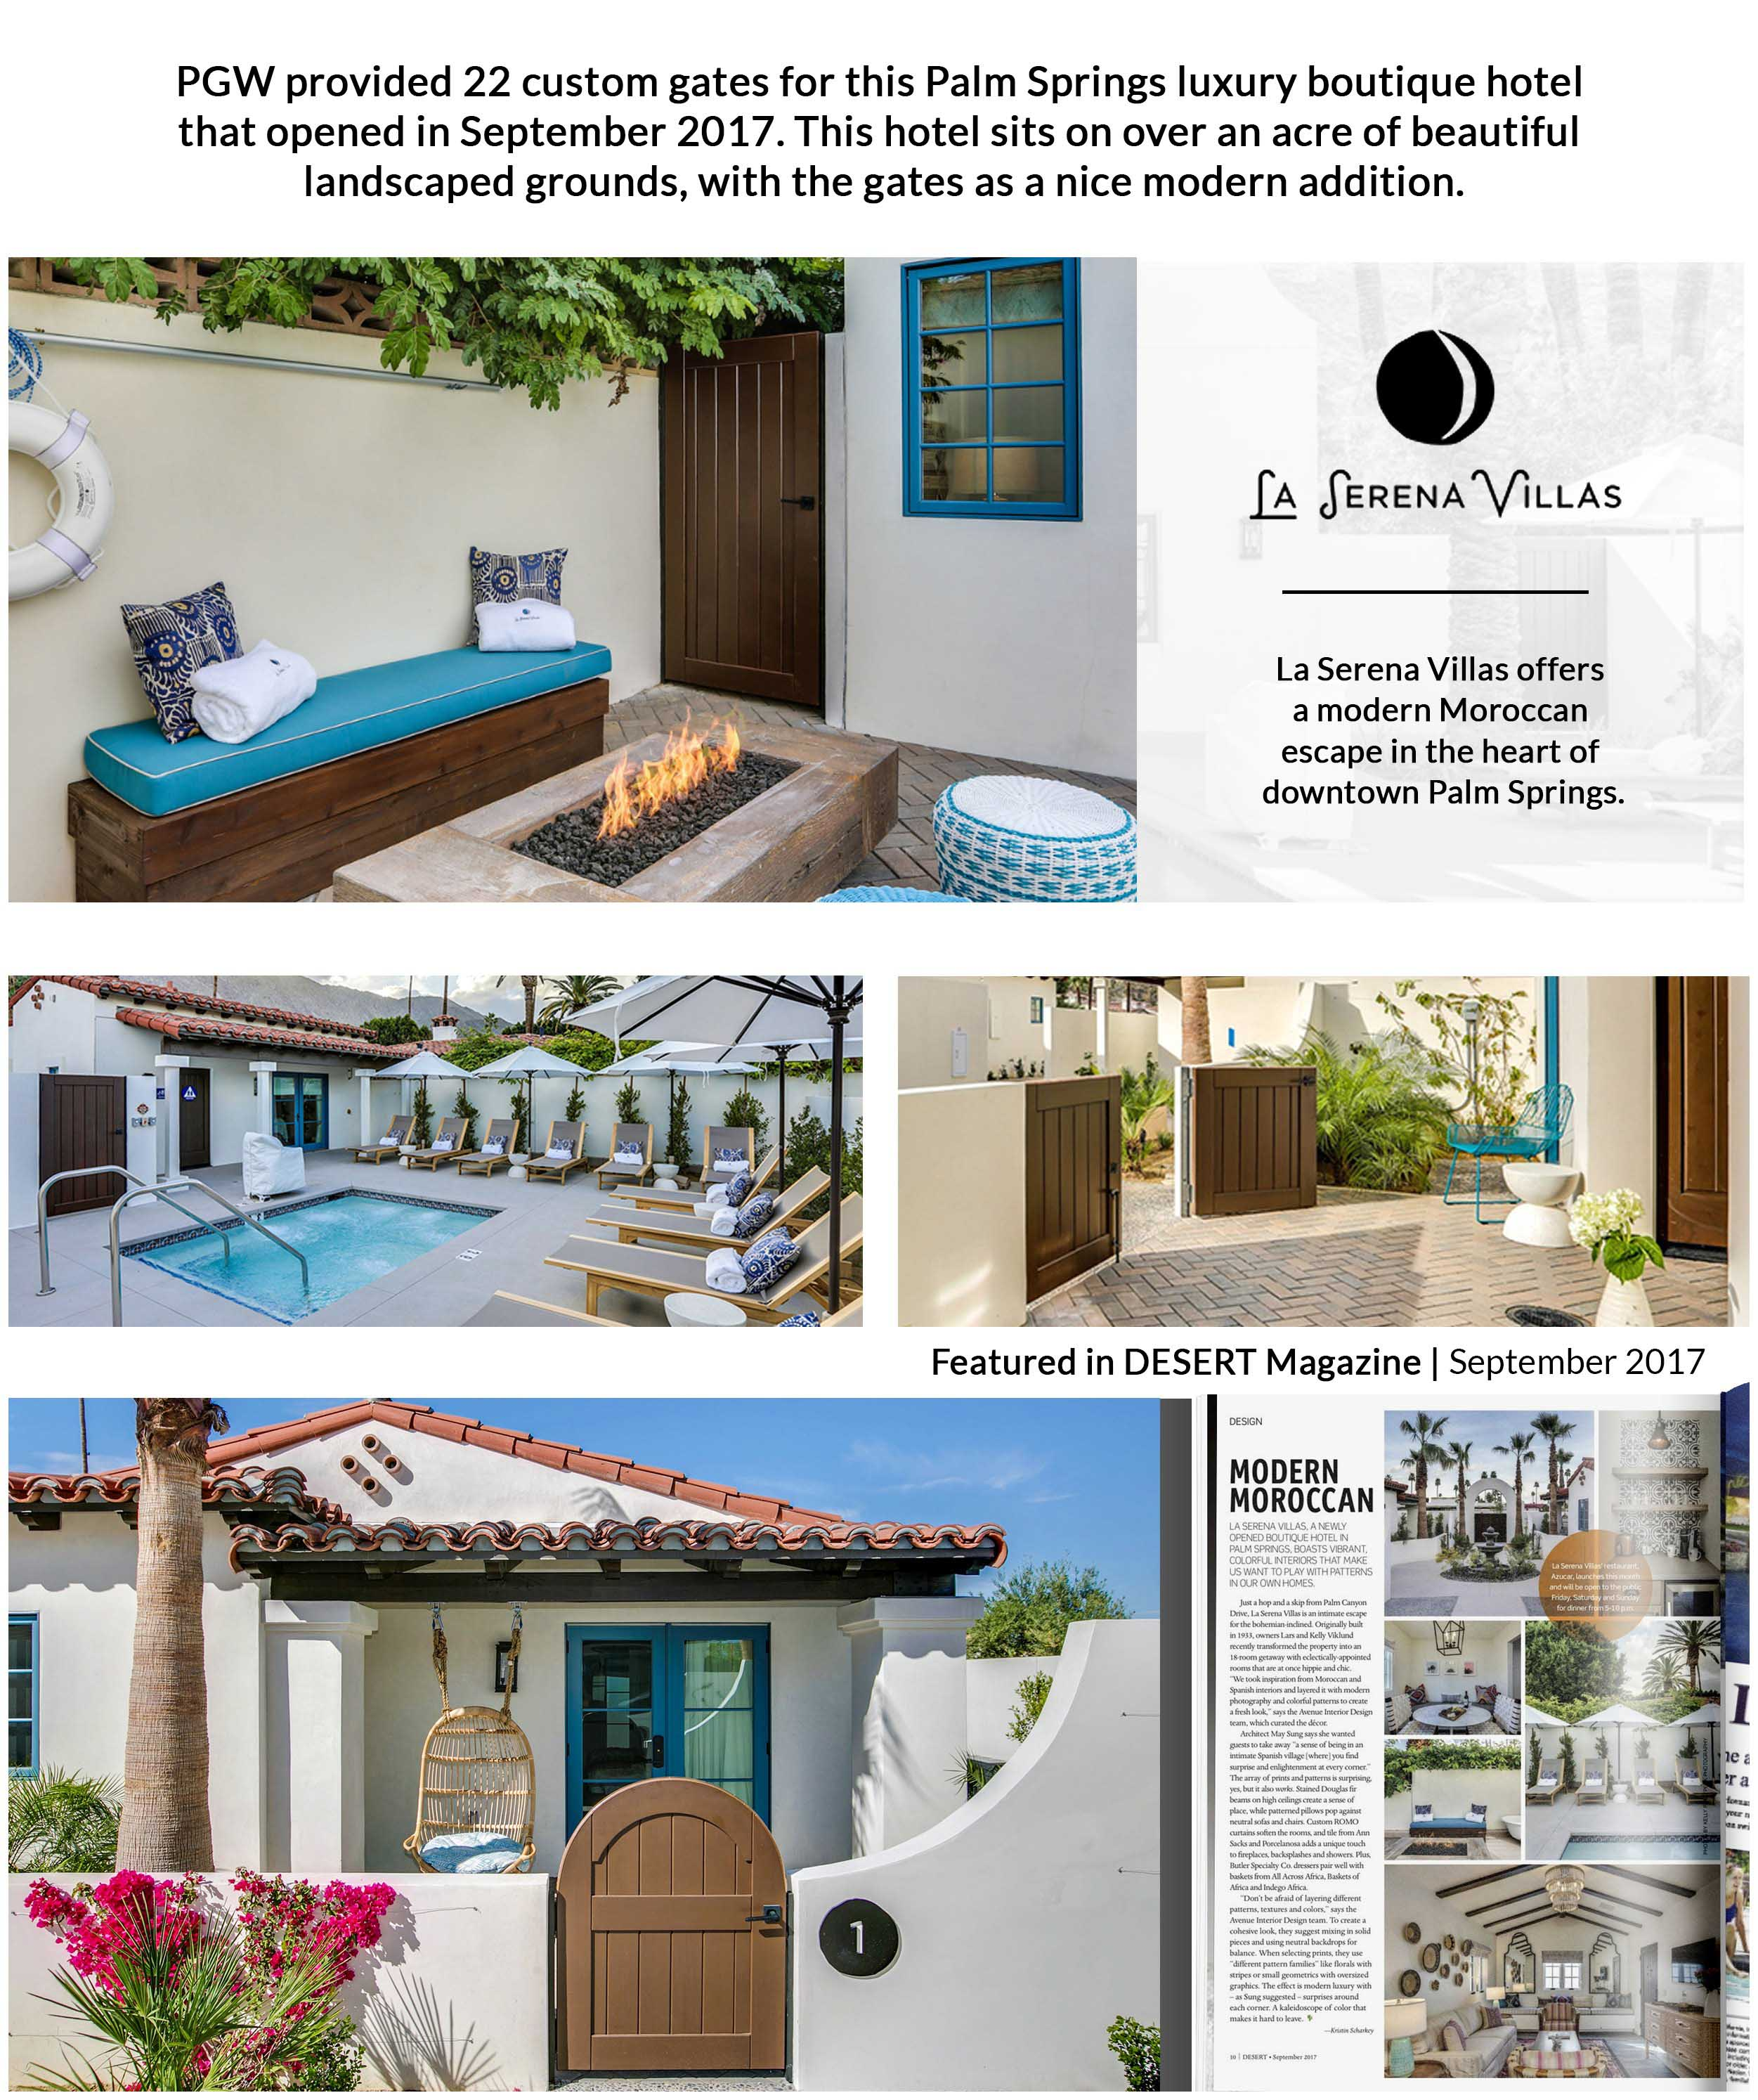 la-serena-villas-lower-res.jpg